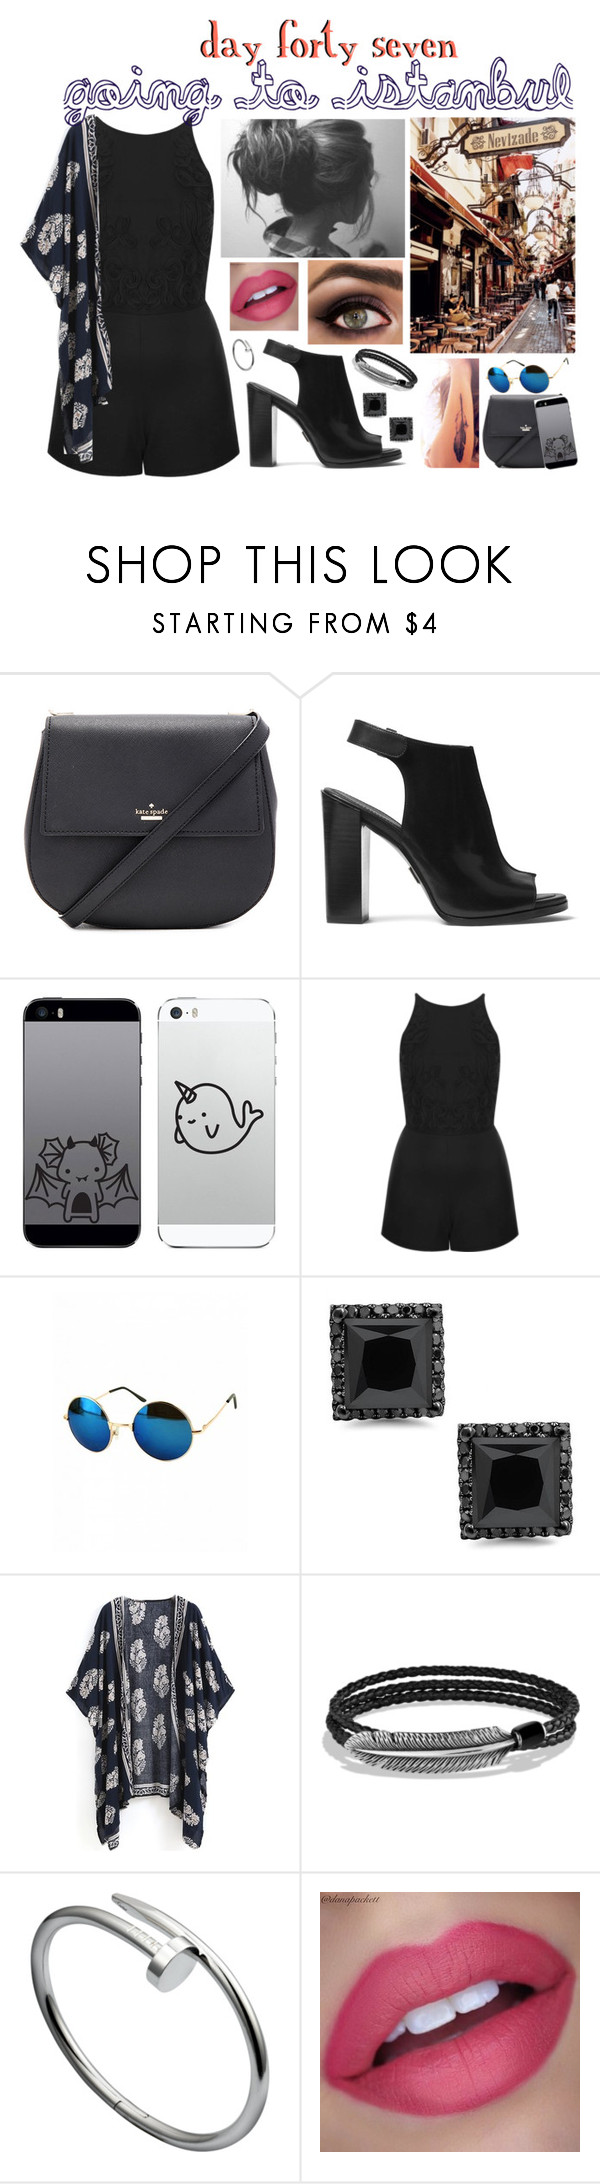 """""""day forty seven, going to instanbul"""" by roxouu ❤ liked on Polyvore featuring Kate Spade, Michael Kors, Topshop, David Yurman, istanbul and byroxouu"""